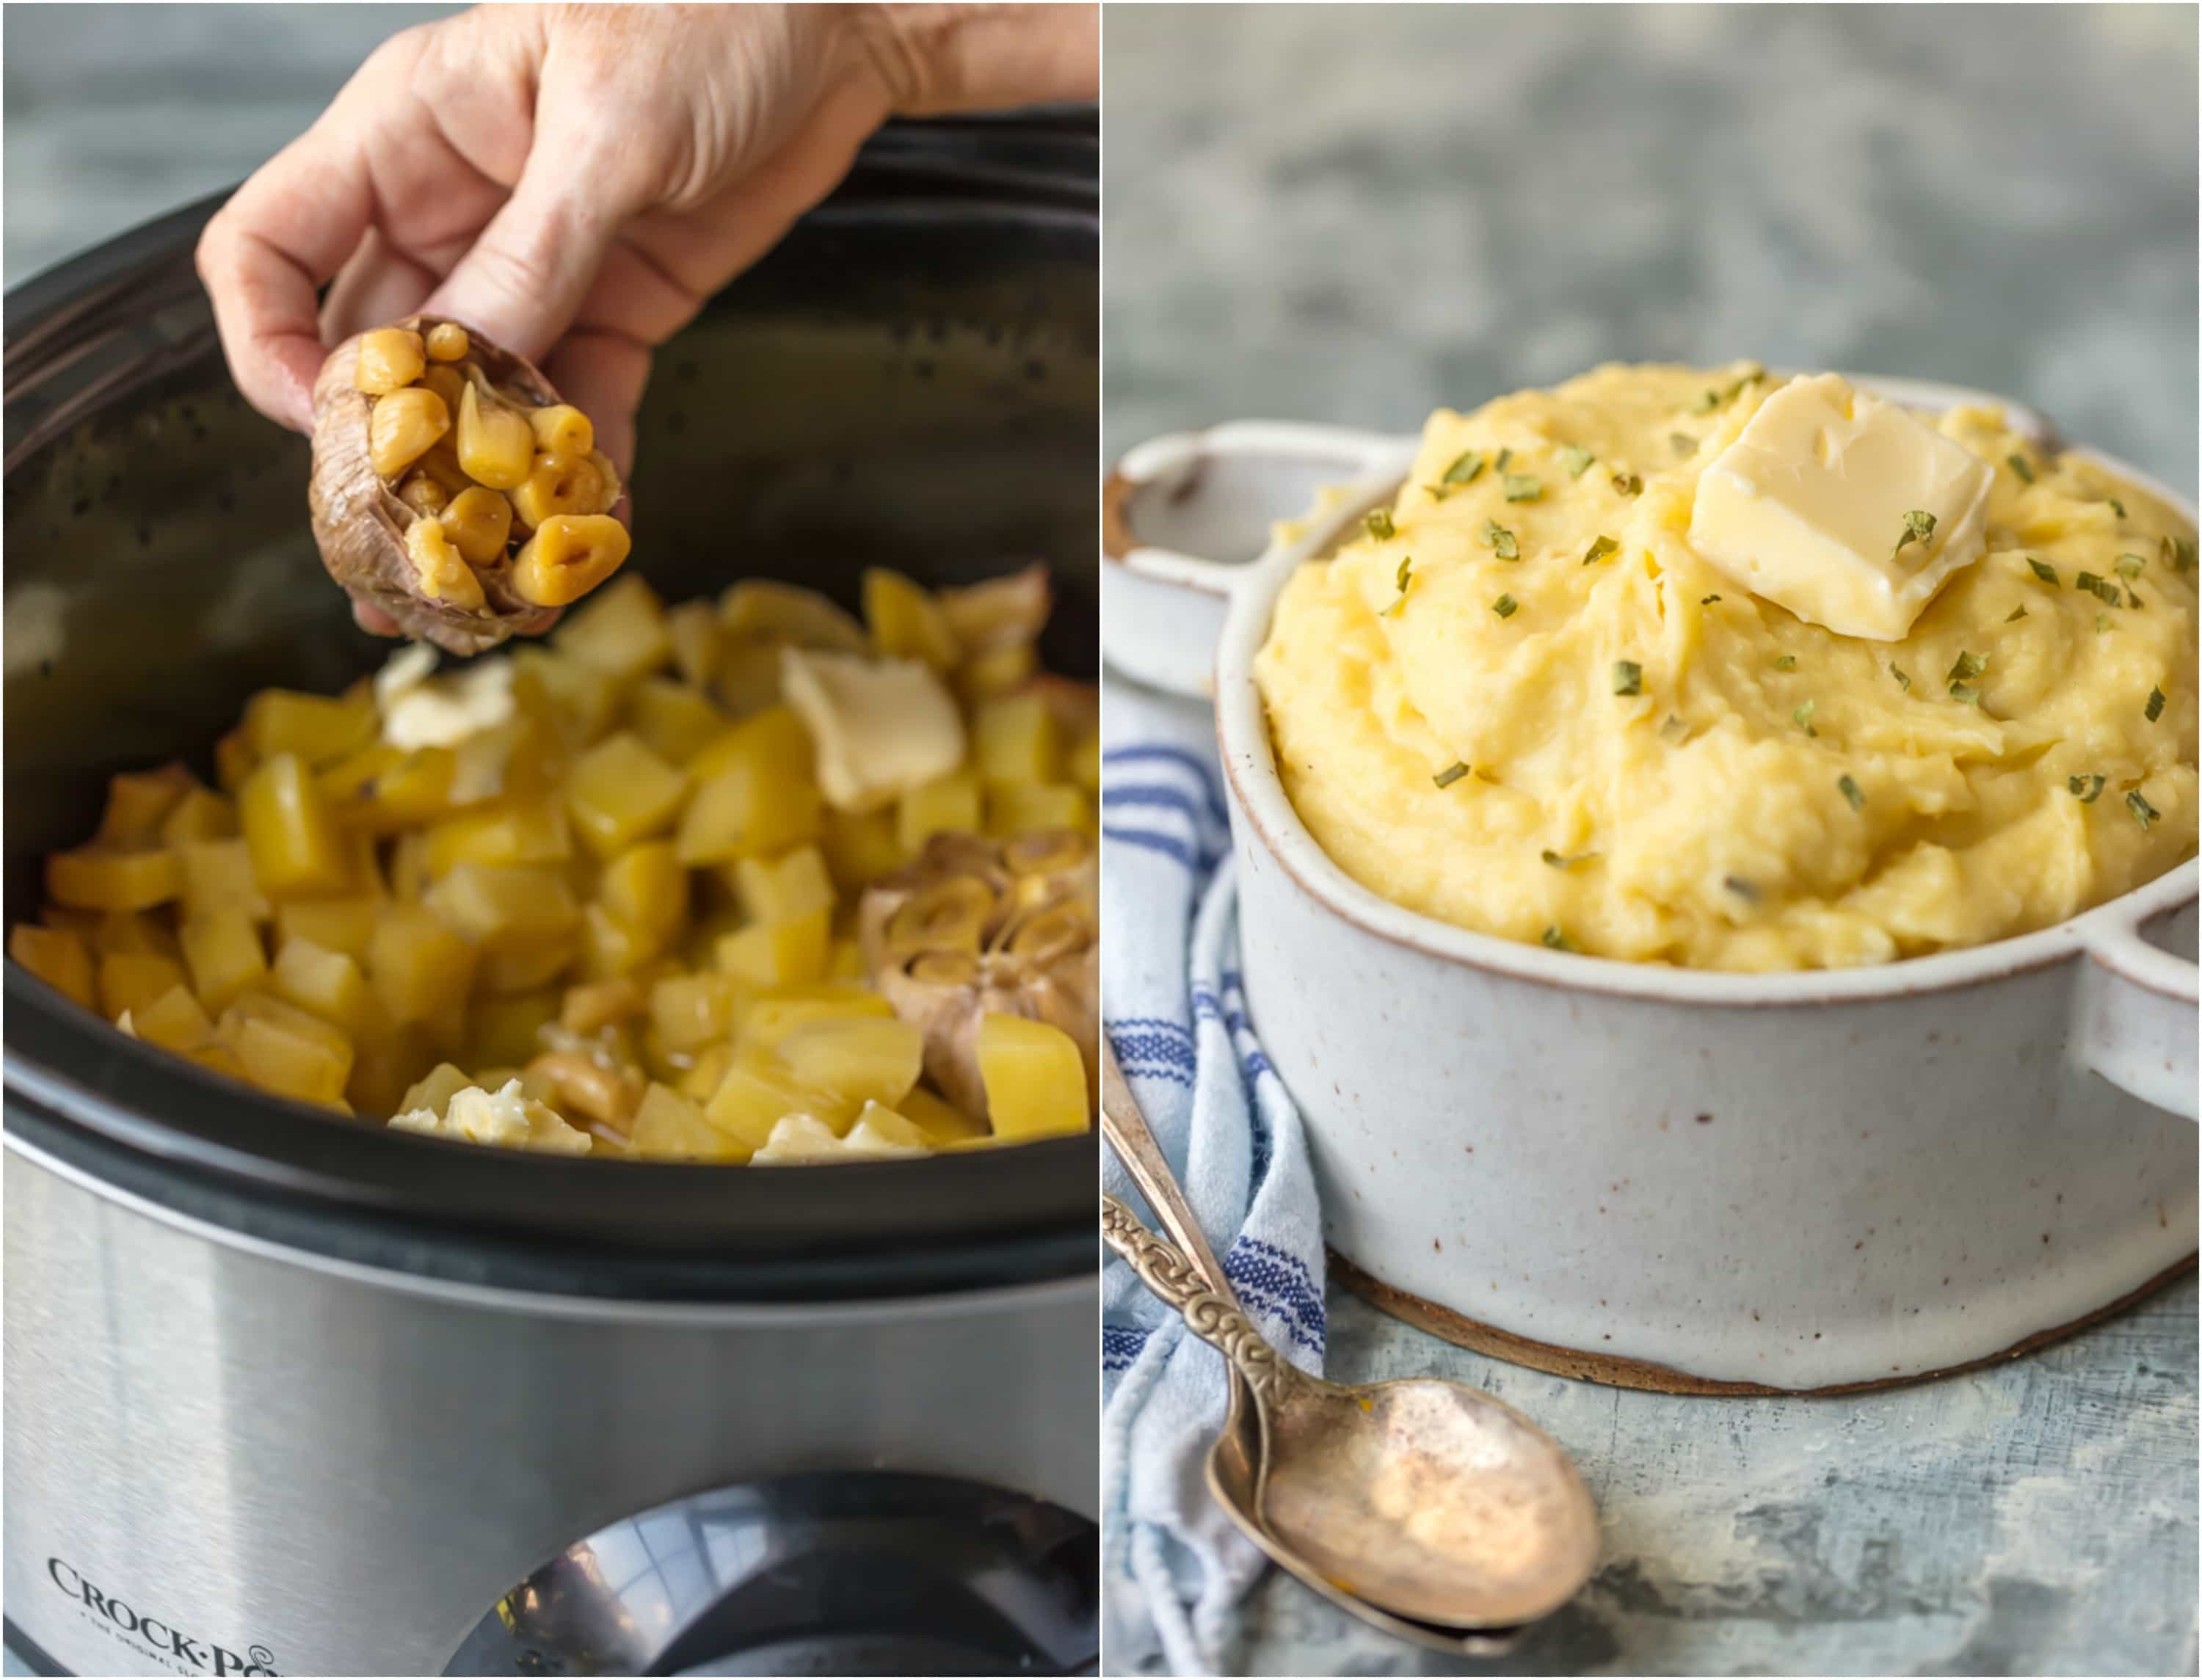 These SLOW COOKER GARLIC BUTTER MASHED POTATOES are the perfect EASY Thanksgiving side dish. So much flavor and none of the fuss.